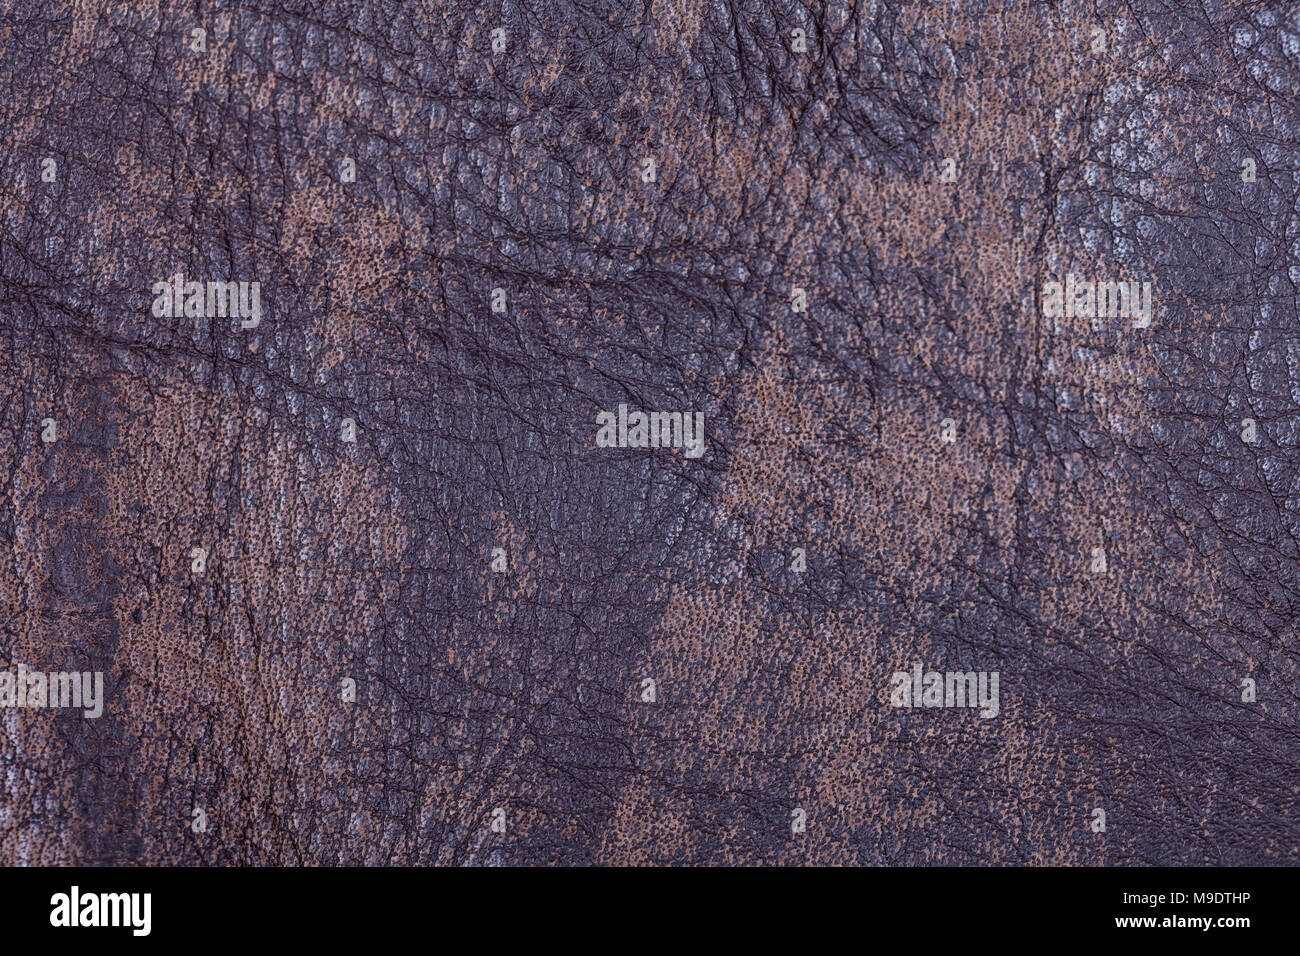 Piece of synthetic leather of brown color for the manufacture of clothes. - Stock Image